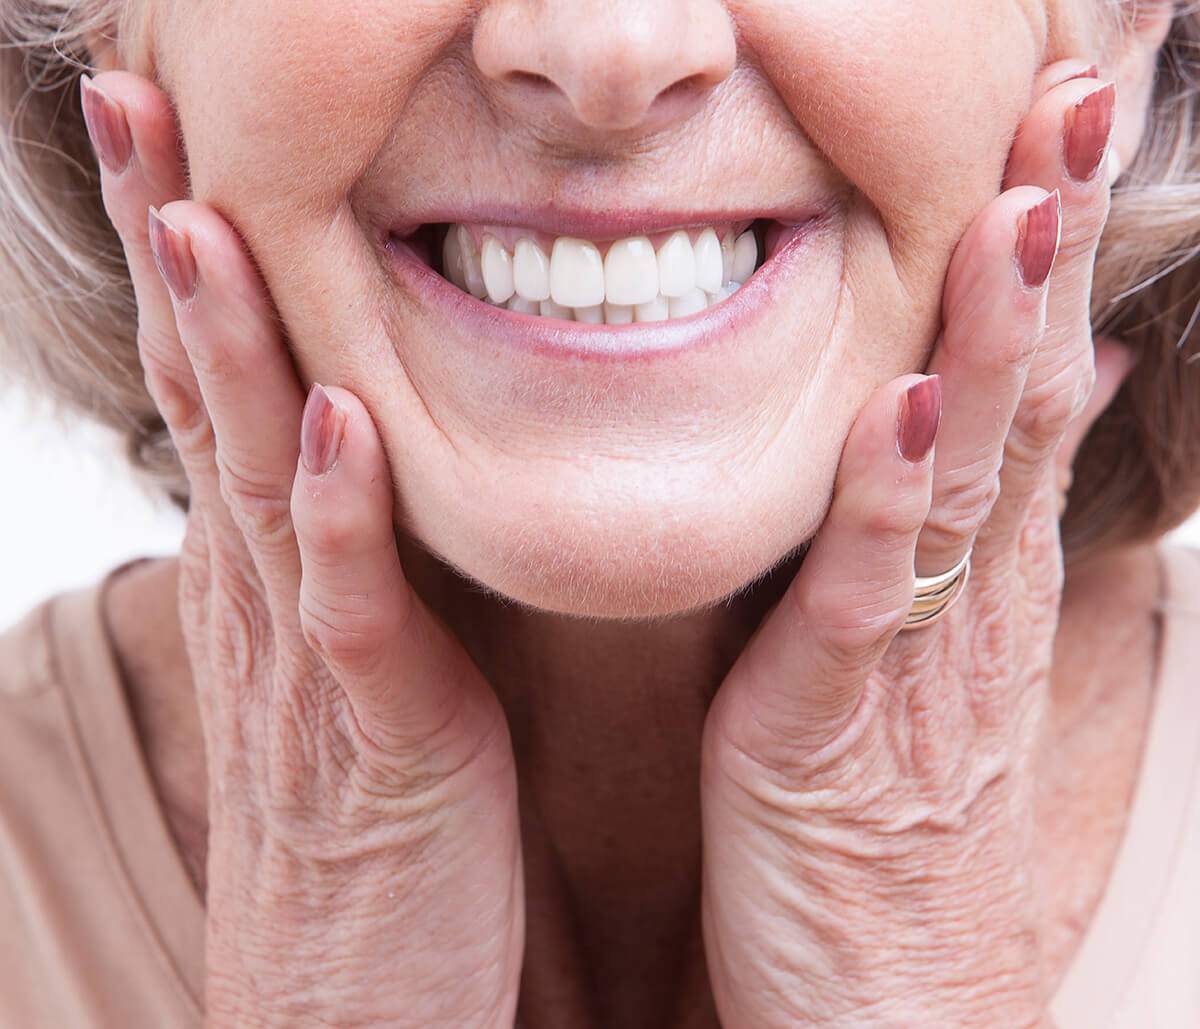 Dentures Dentist Dr. John Aurelia For new teeth that look and feel natural, get custom dentures at our Rochester, MI dental office